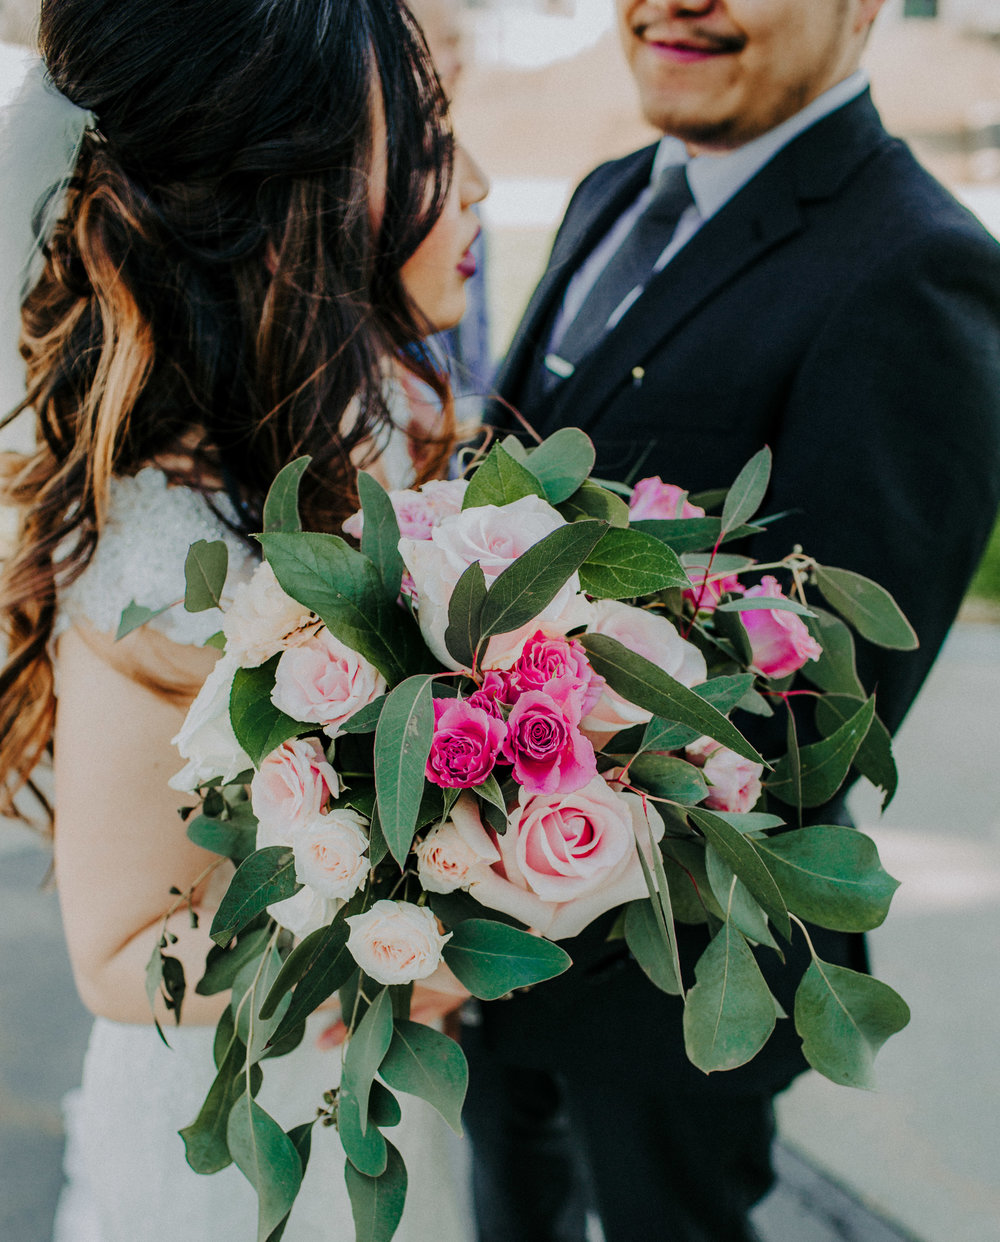 Flower+Xub, Their Wedding Day-50.jpg